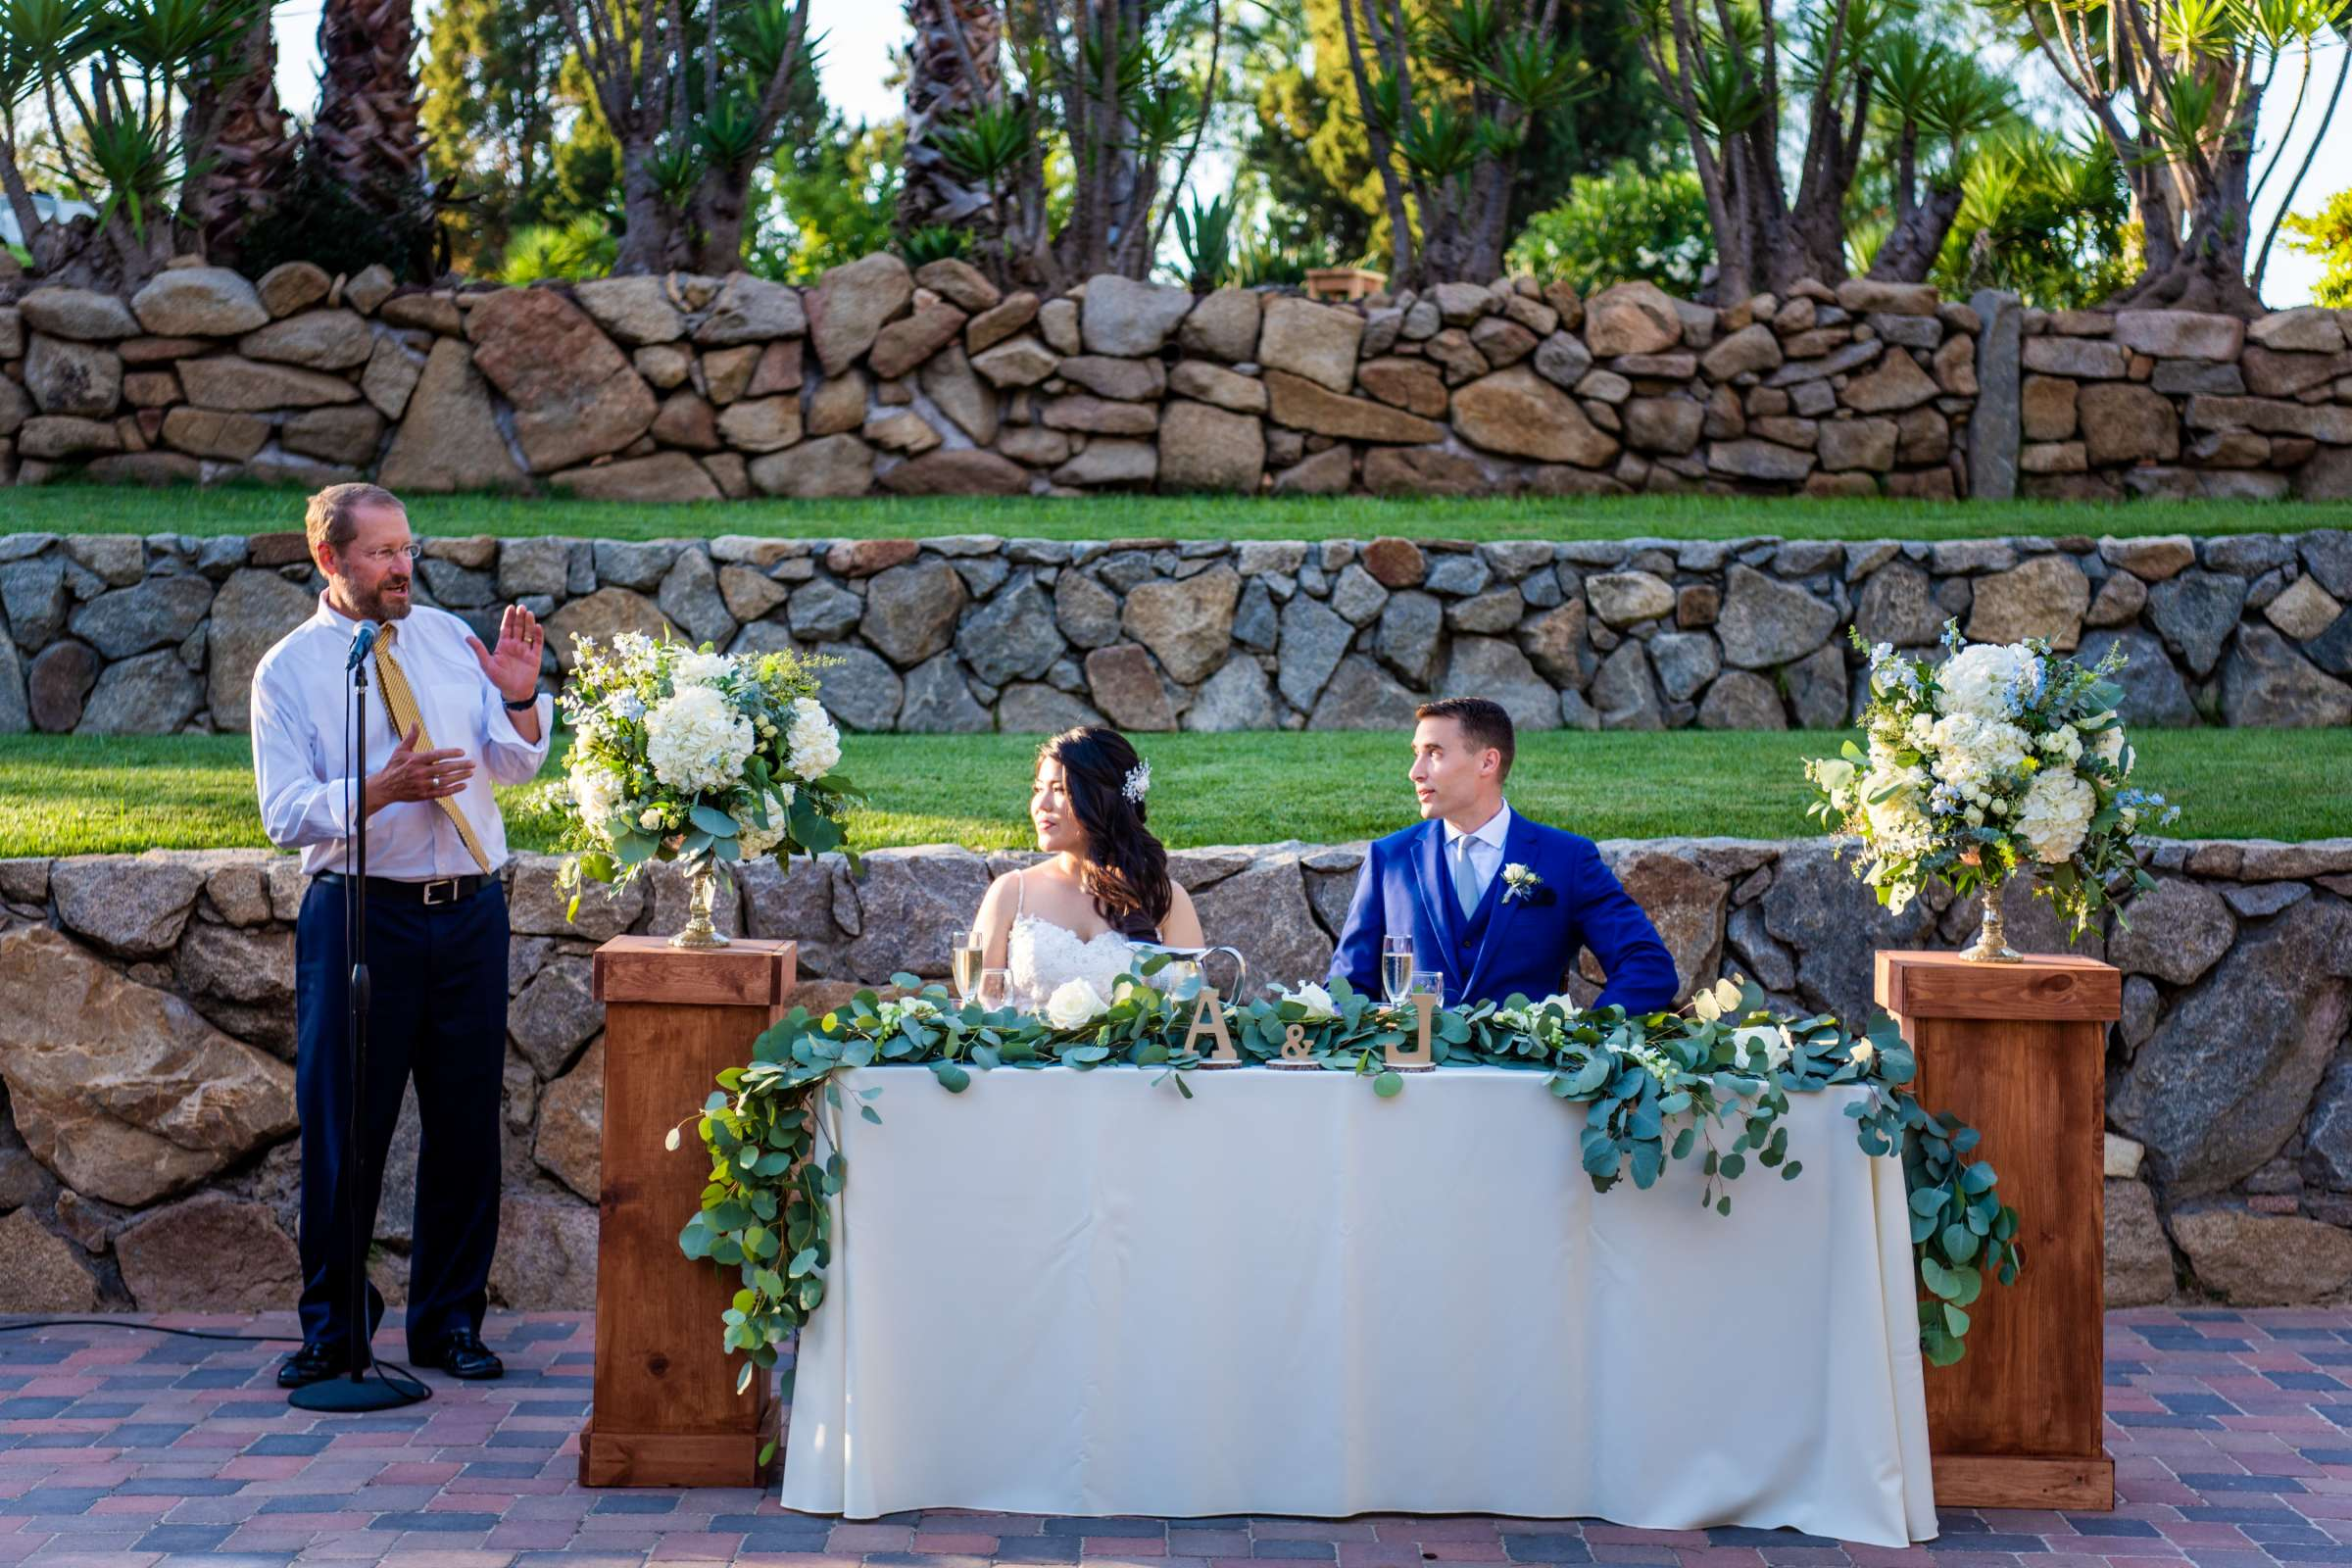 Mt Woodson Castle Wedding coordinated by I Do Weddings, Aya and Jared Wedding Photo #486981 by True Photography